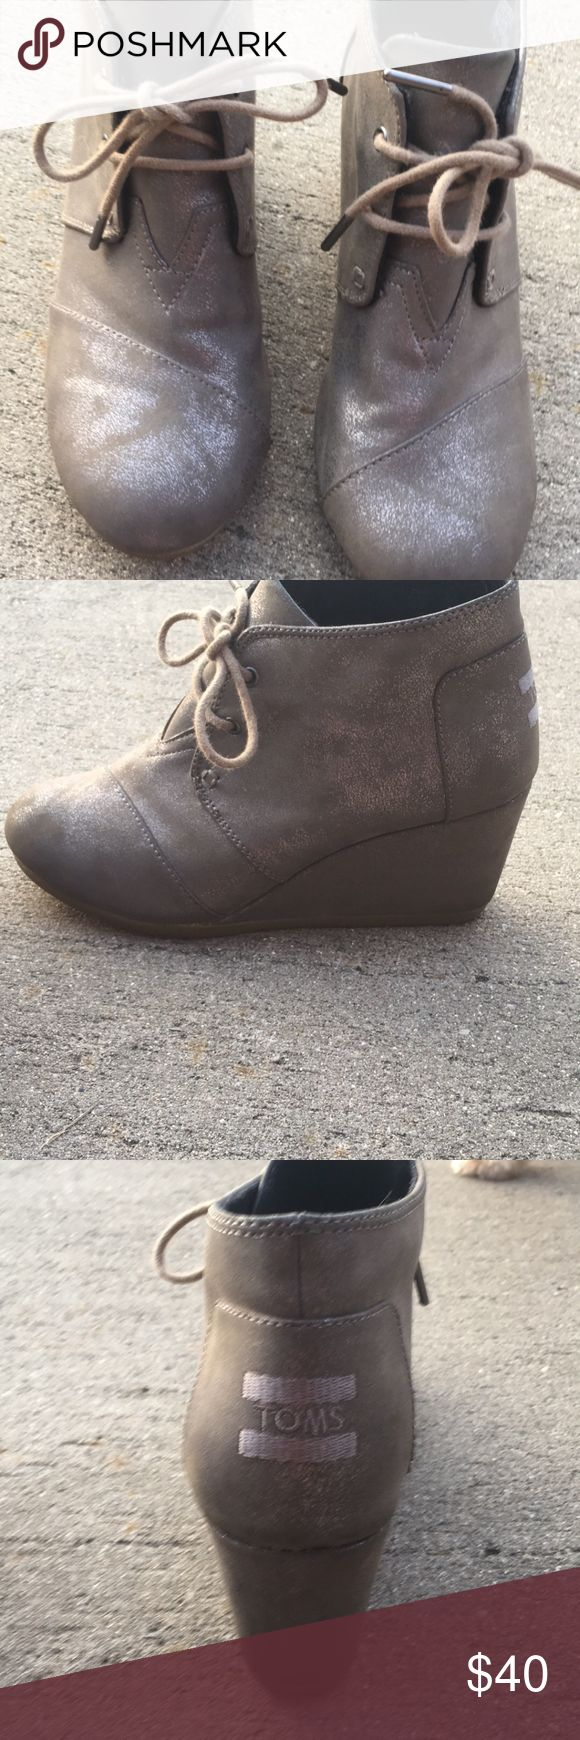 TOMS wedge booties Size 8. Only worn a couple of times. In excellent condition. Toms Shoes Ankle Boots & Booties